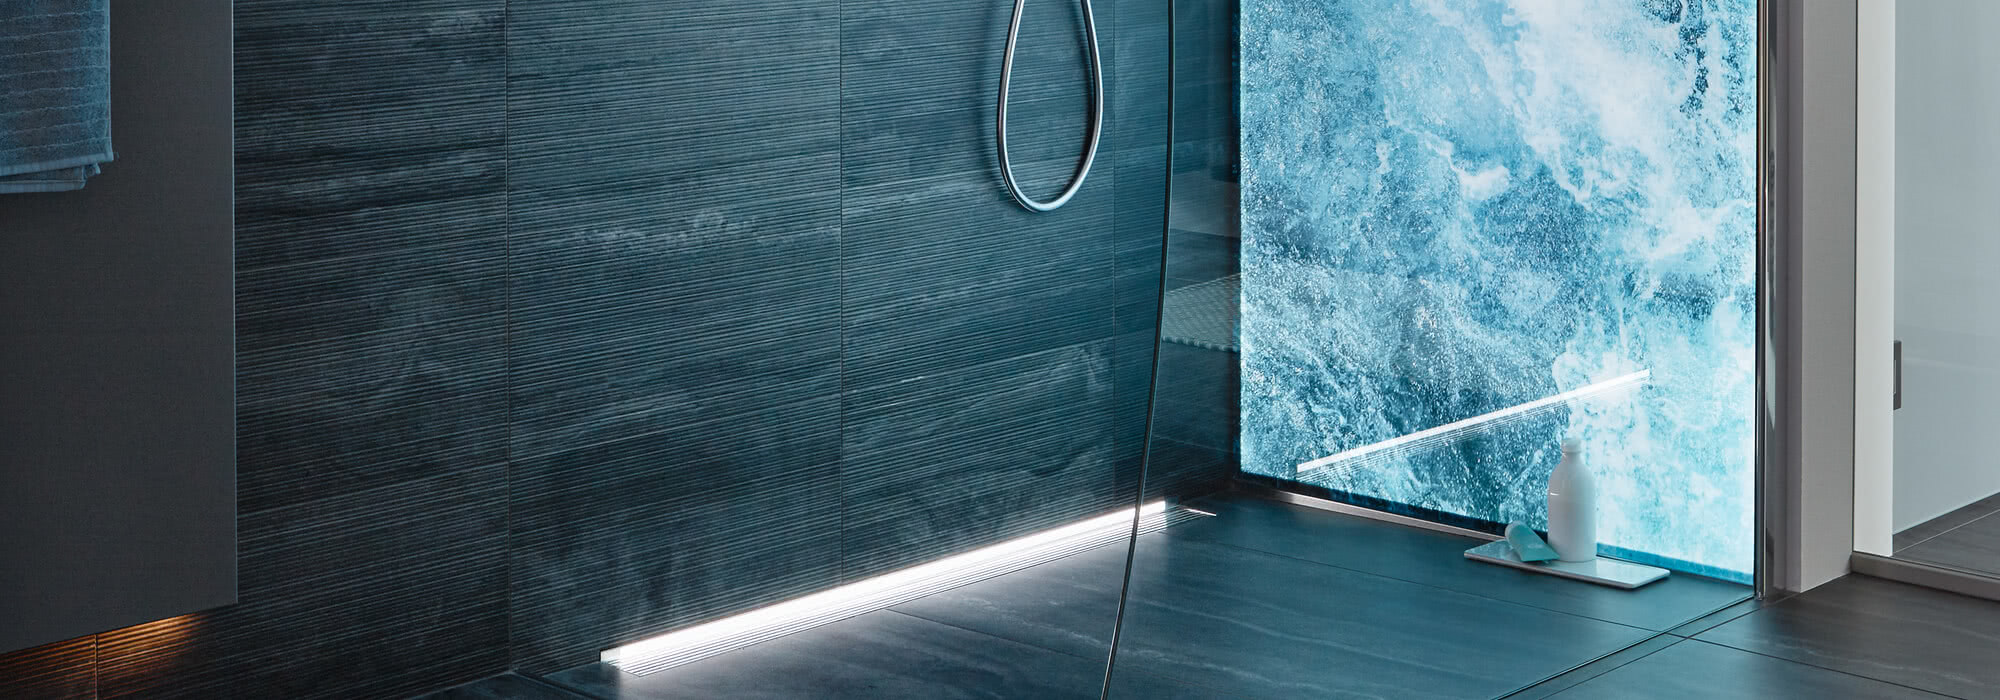 Omega Inloop shower with breaking waves motif and glass cut-out